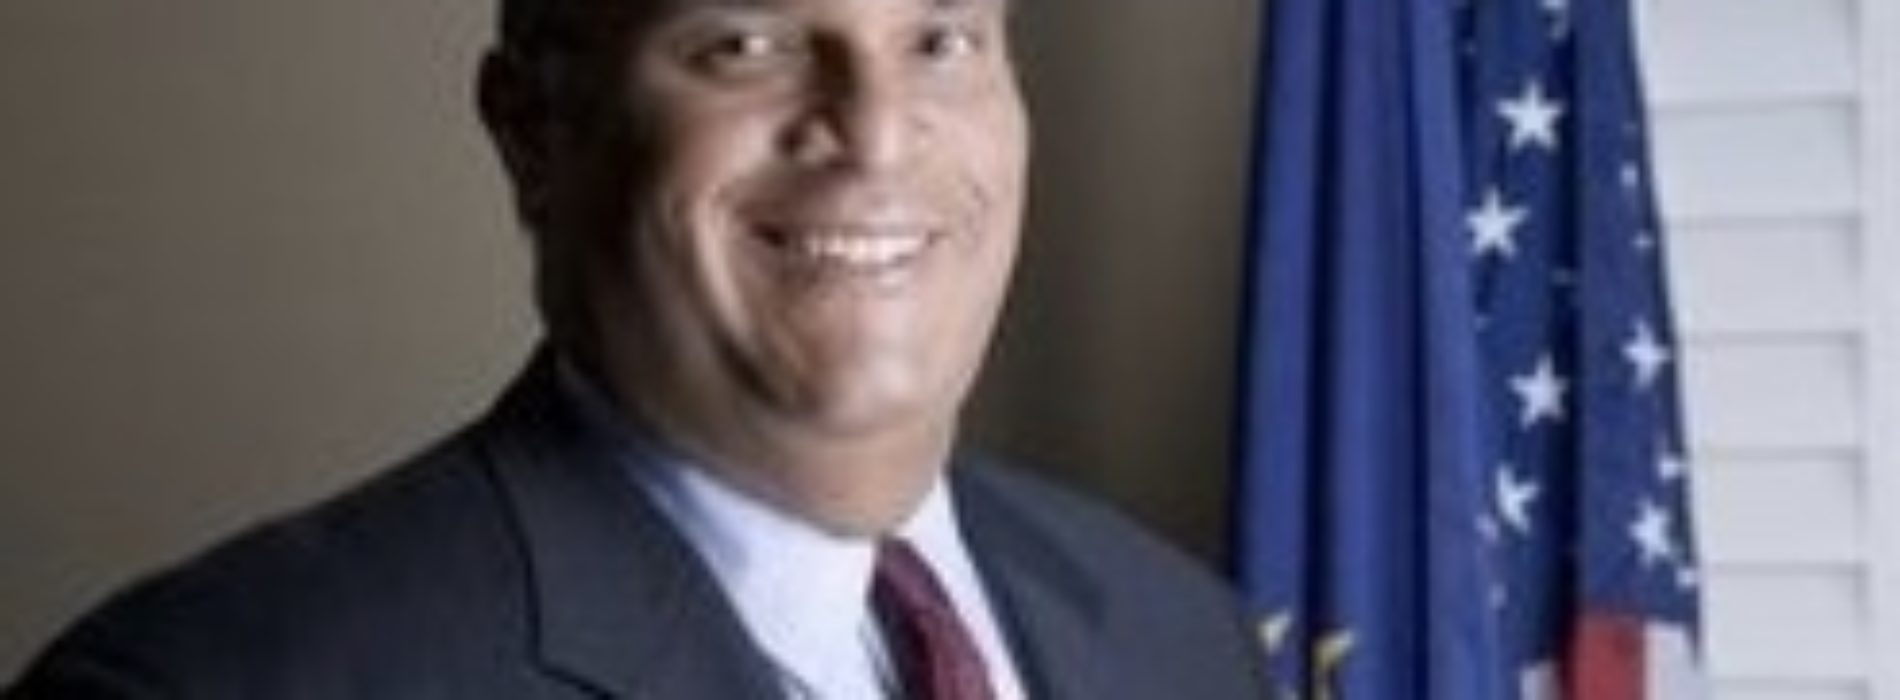 Former State Health Commissioner to Make Political Announcement